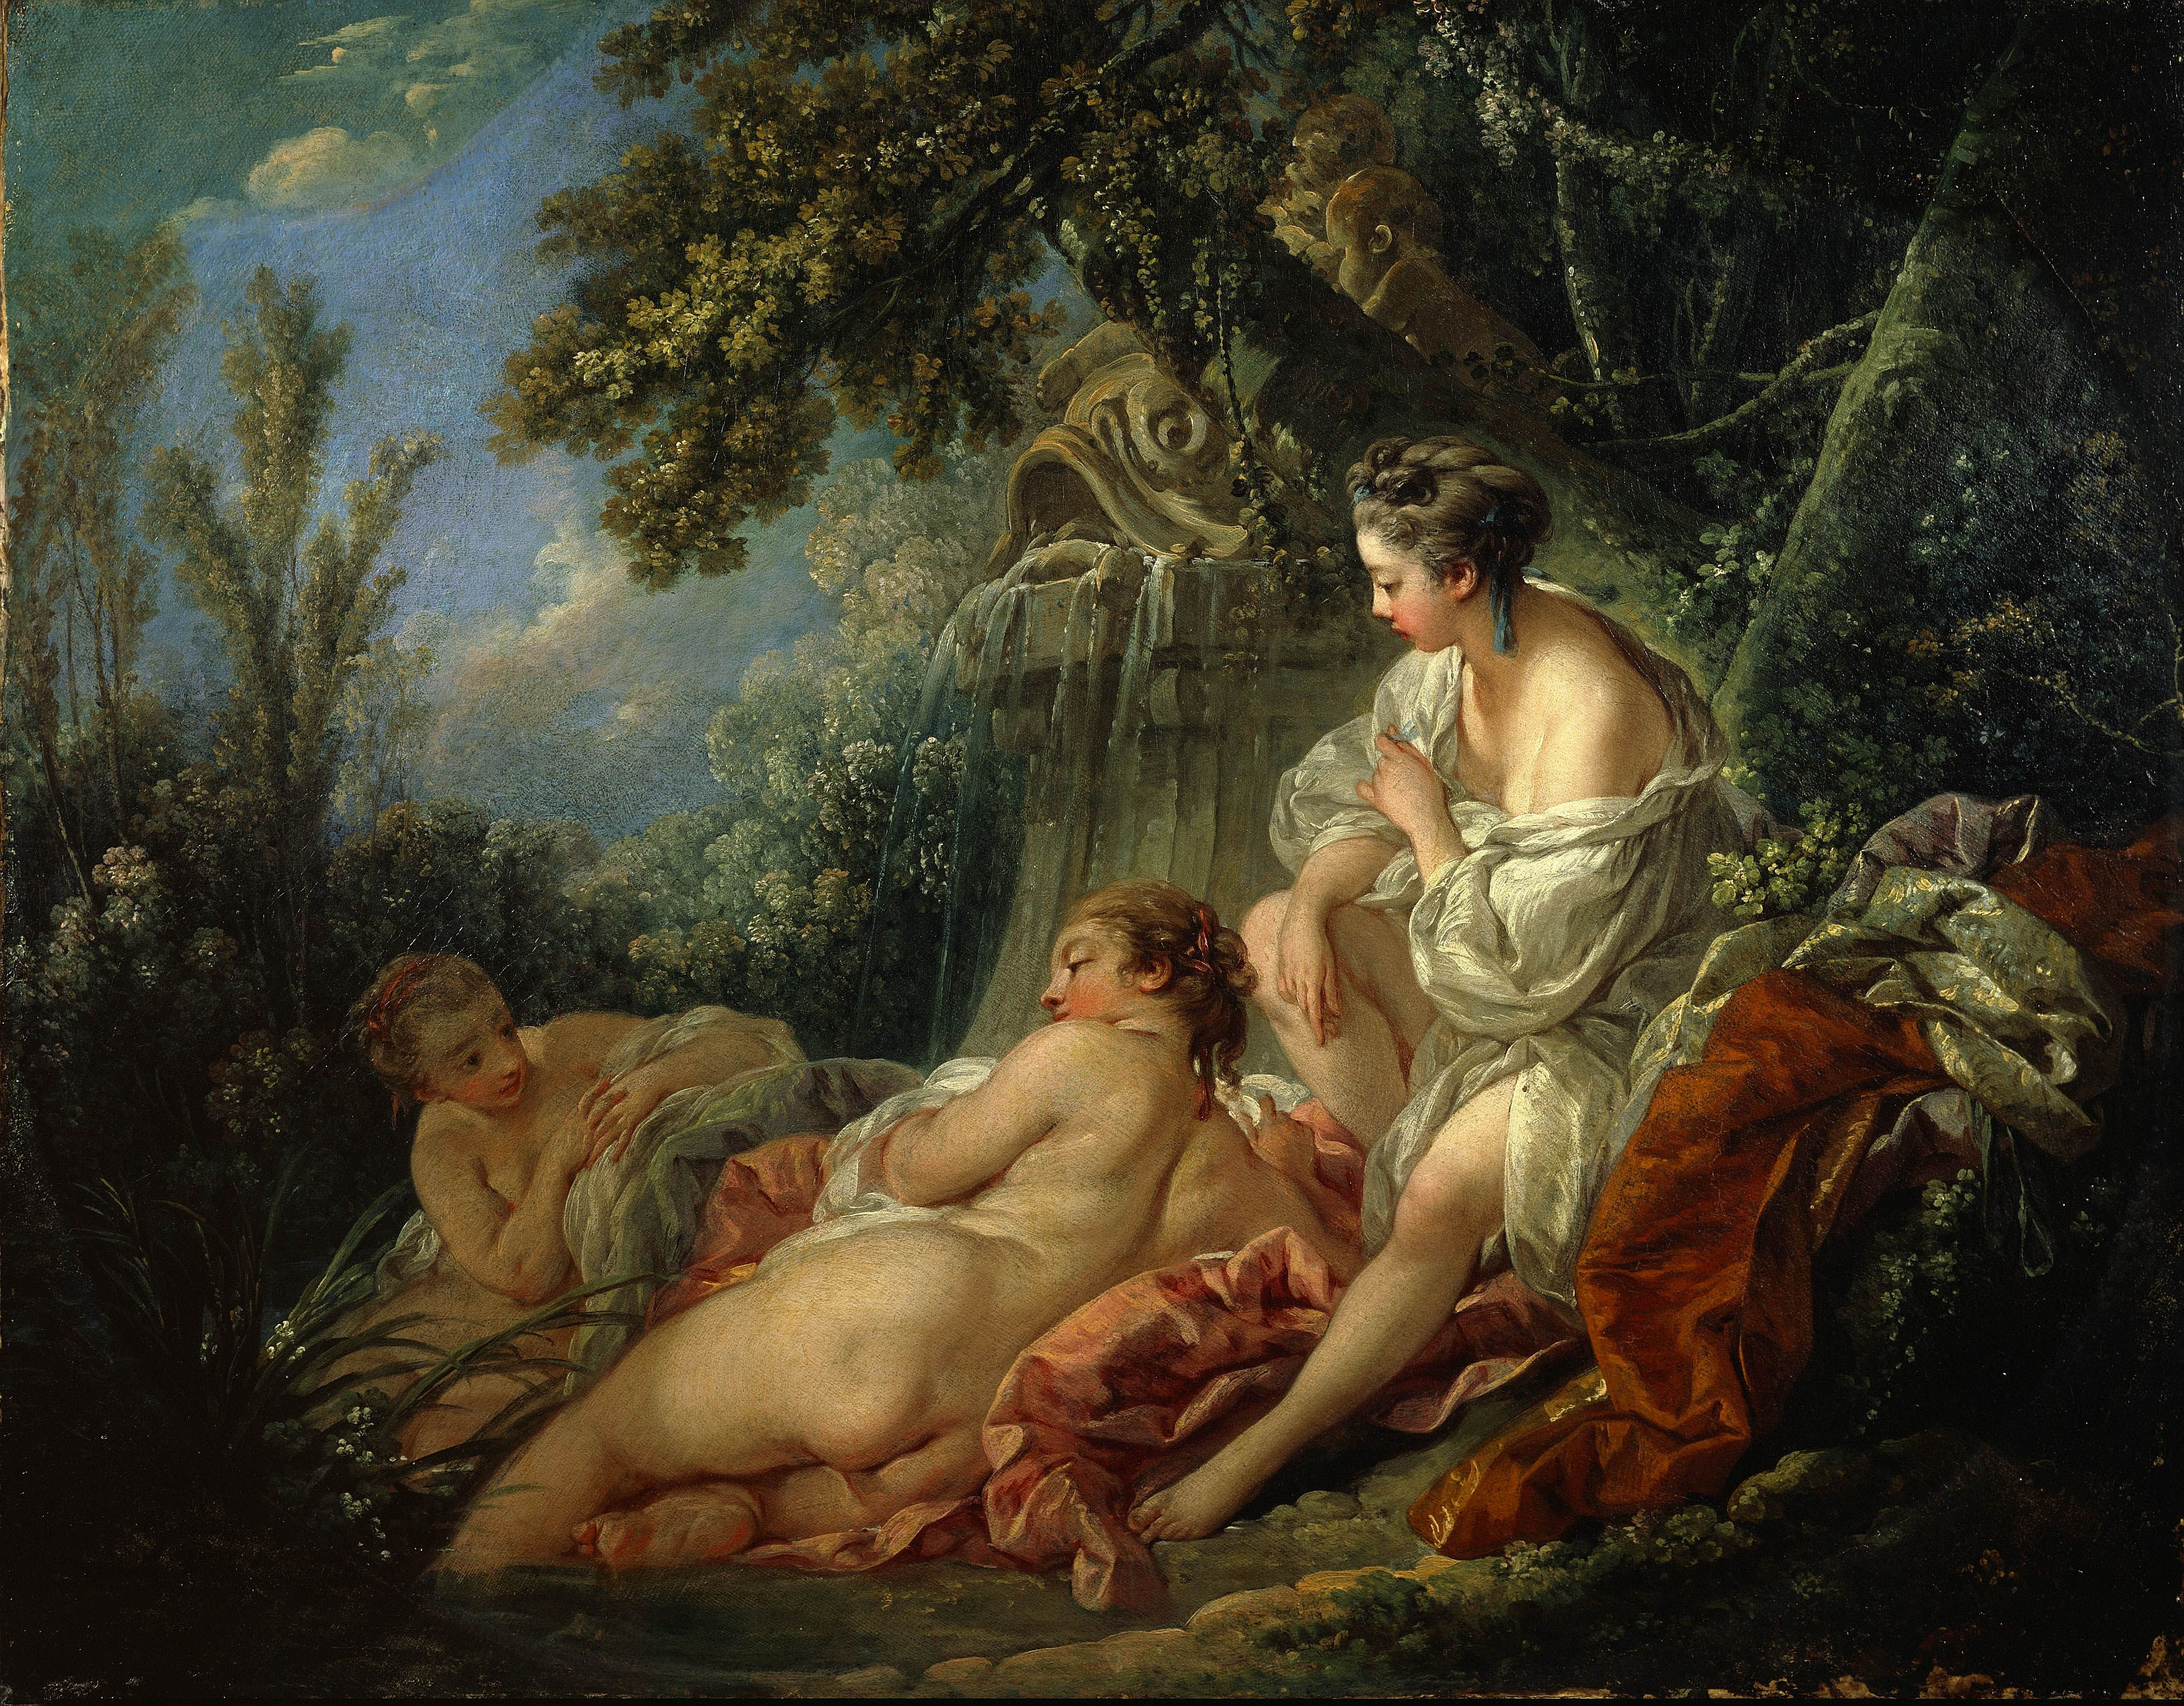 an analysis of the form of the painting autumn by francois boucher François boucher (1703 - 1770) pastoral with a couple near a fountain france  1749 painting oil on canvas image size: 2595 x 1986 cm signature: 'f.